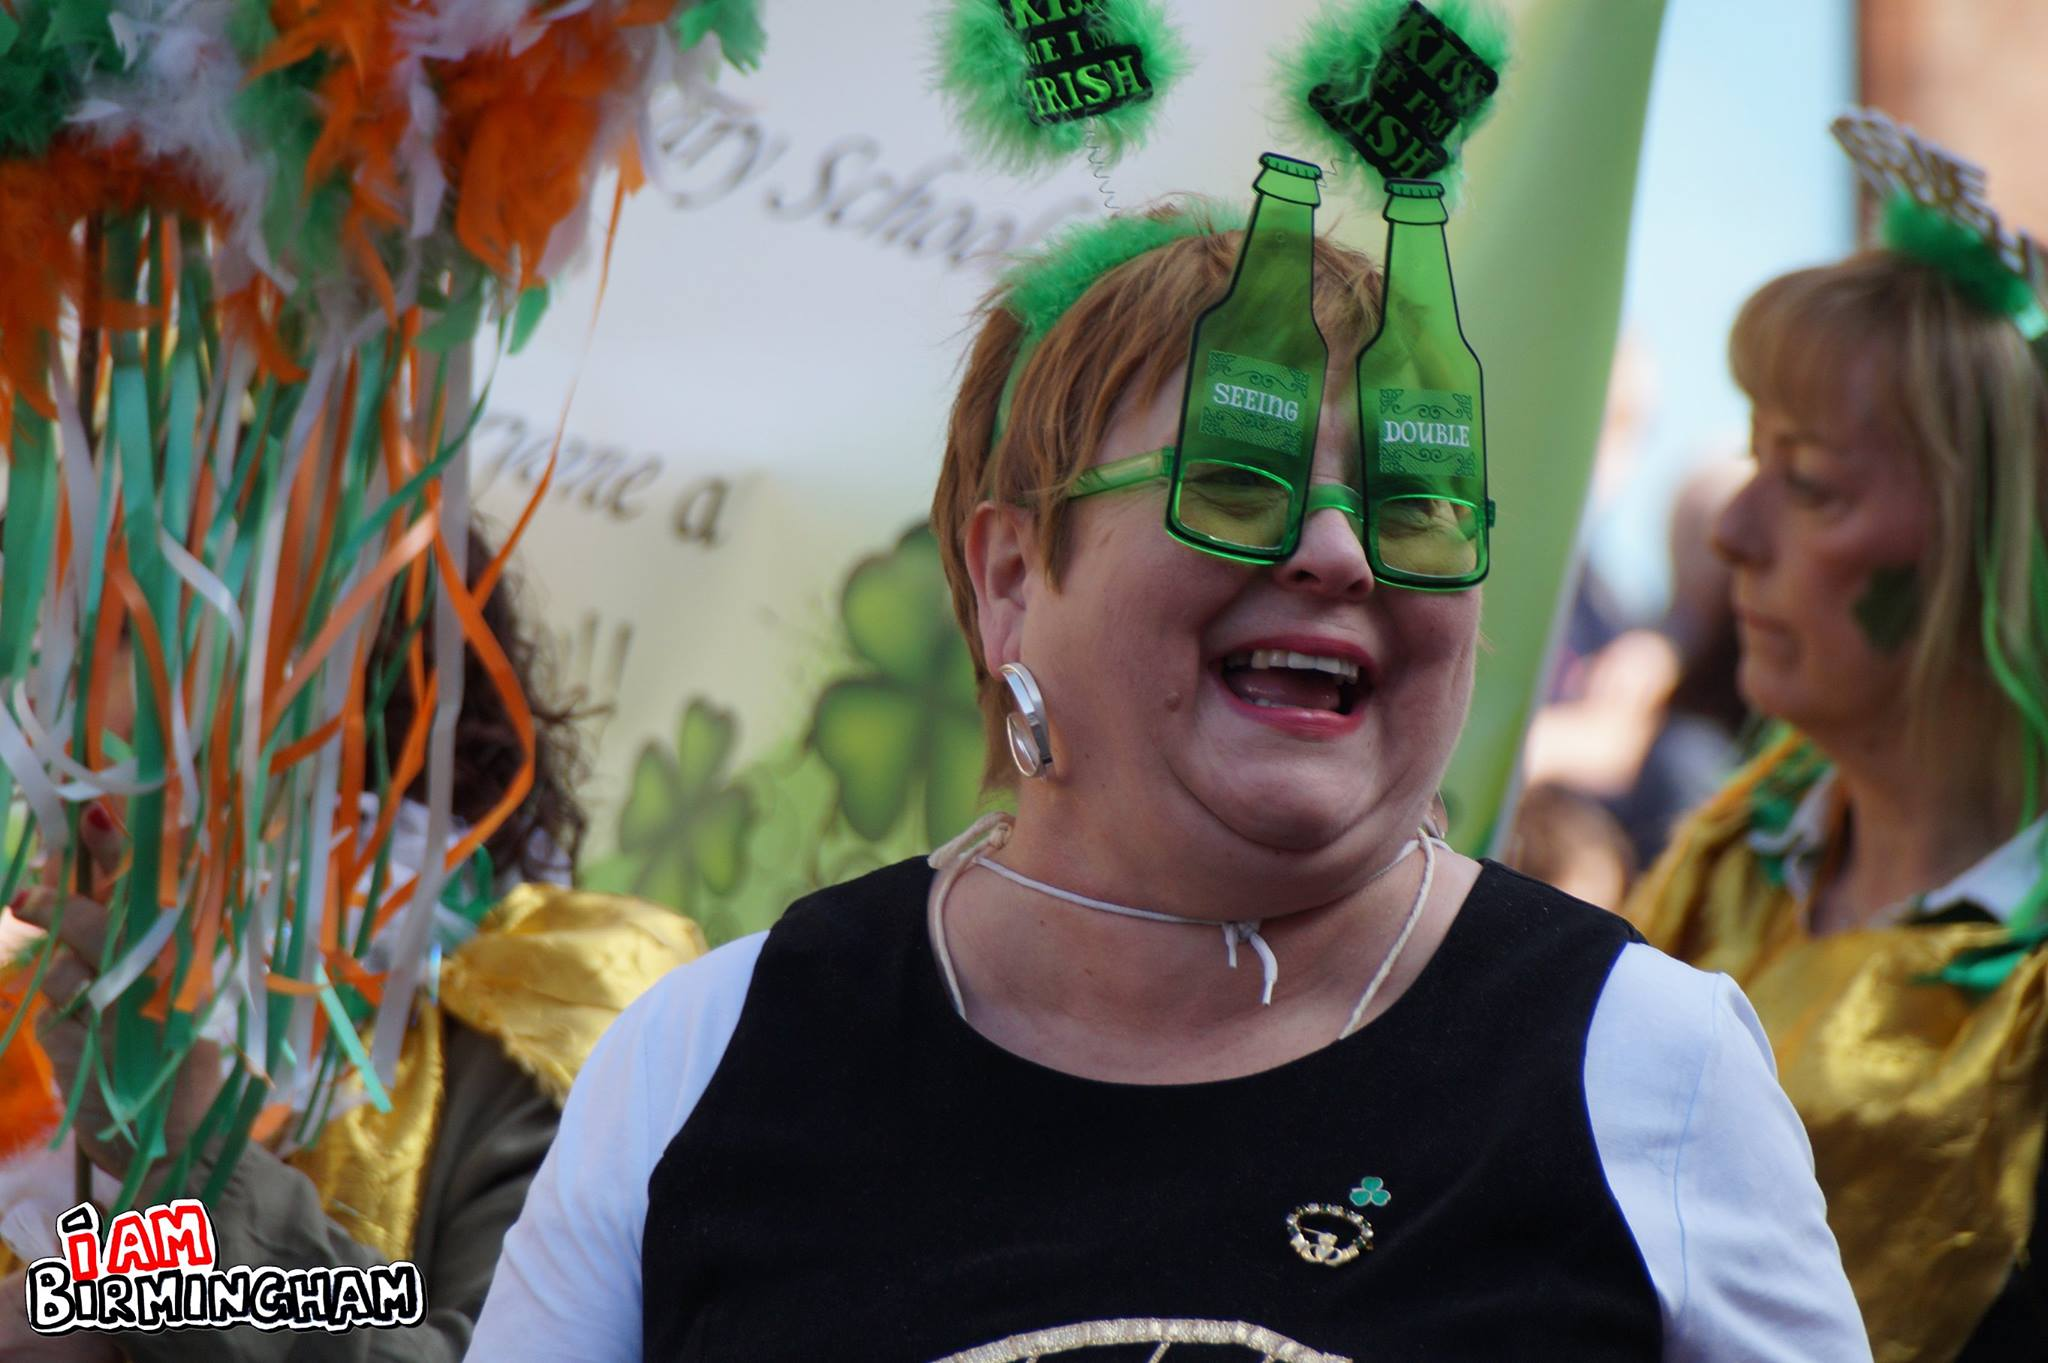 58 photos capturing the beautiful diversity of St Paddy's Day celebrations in Brum